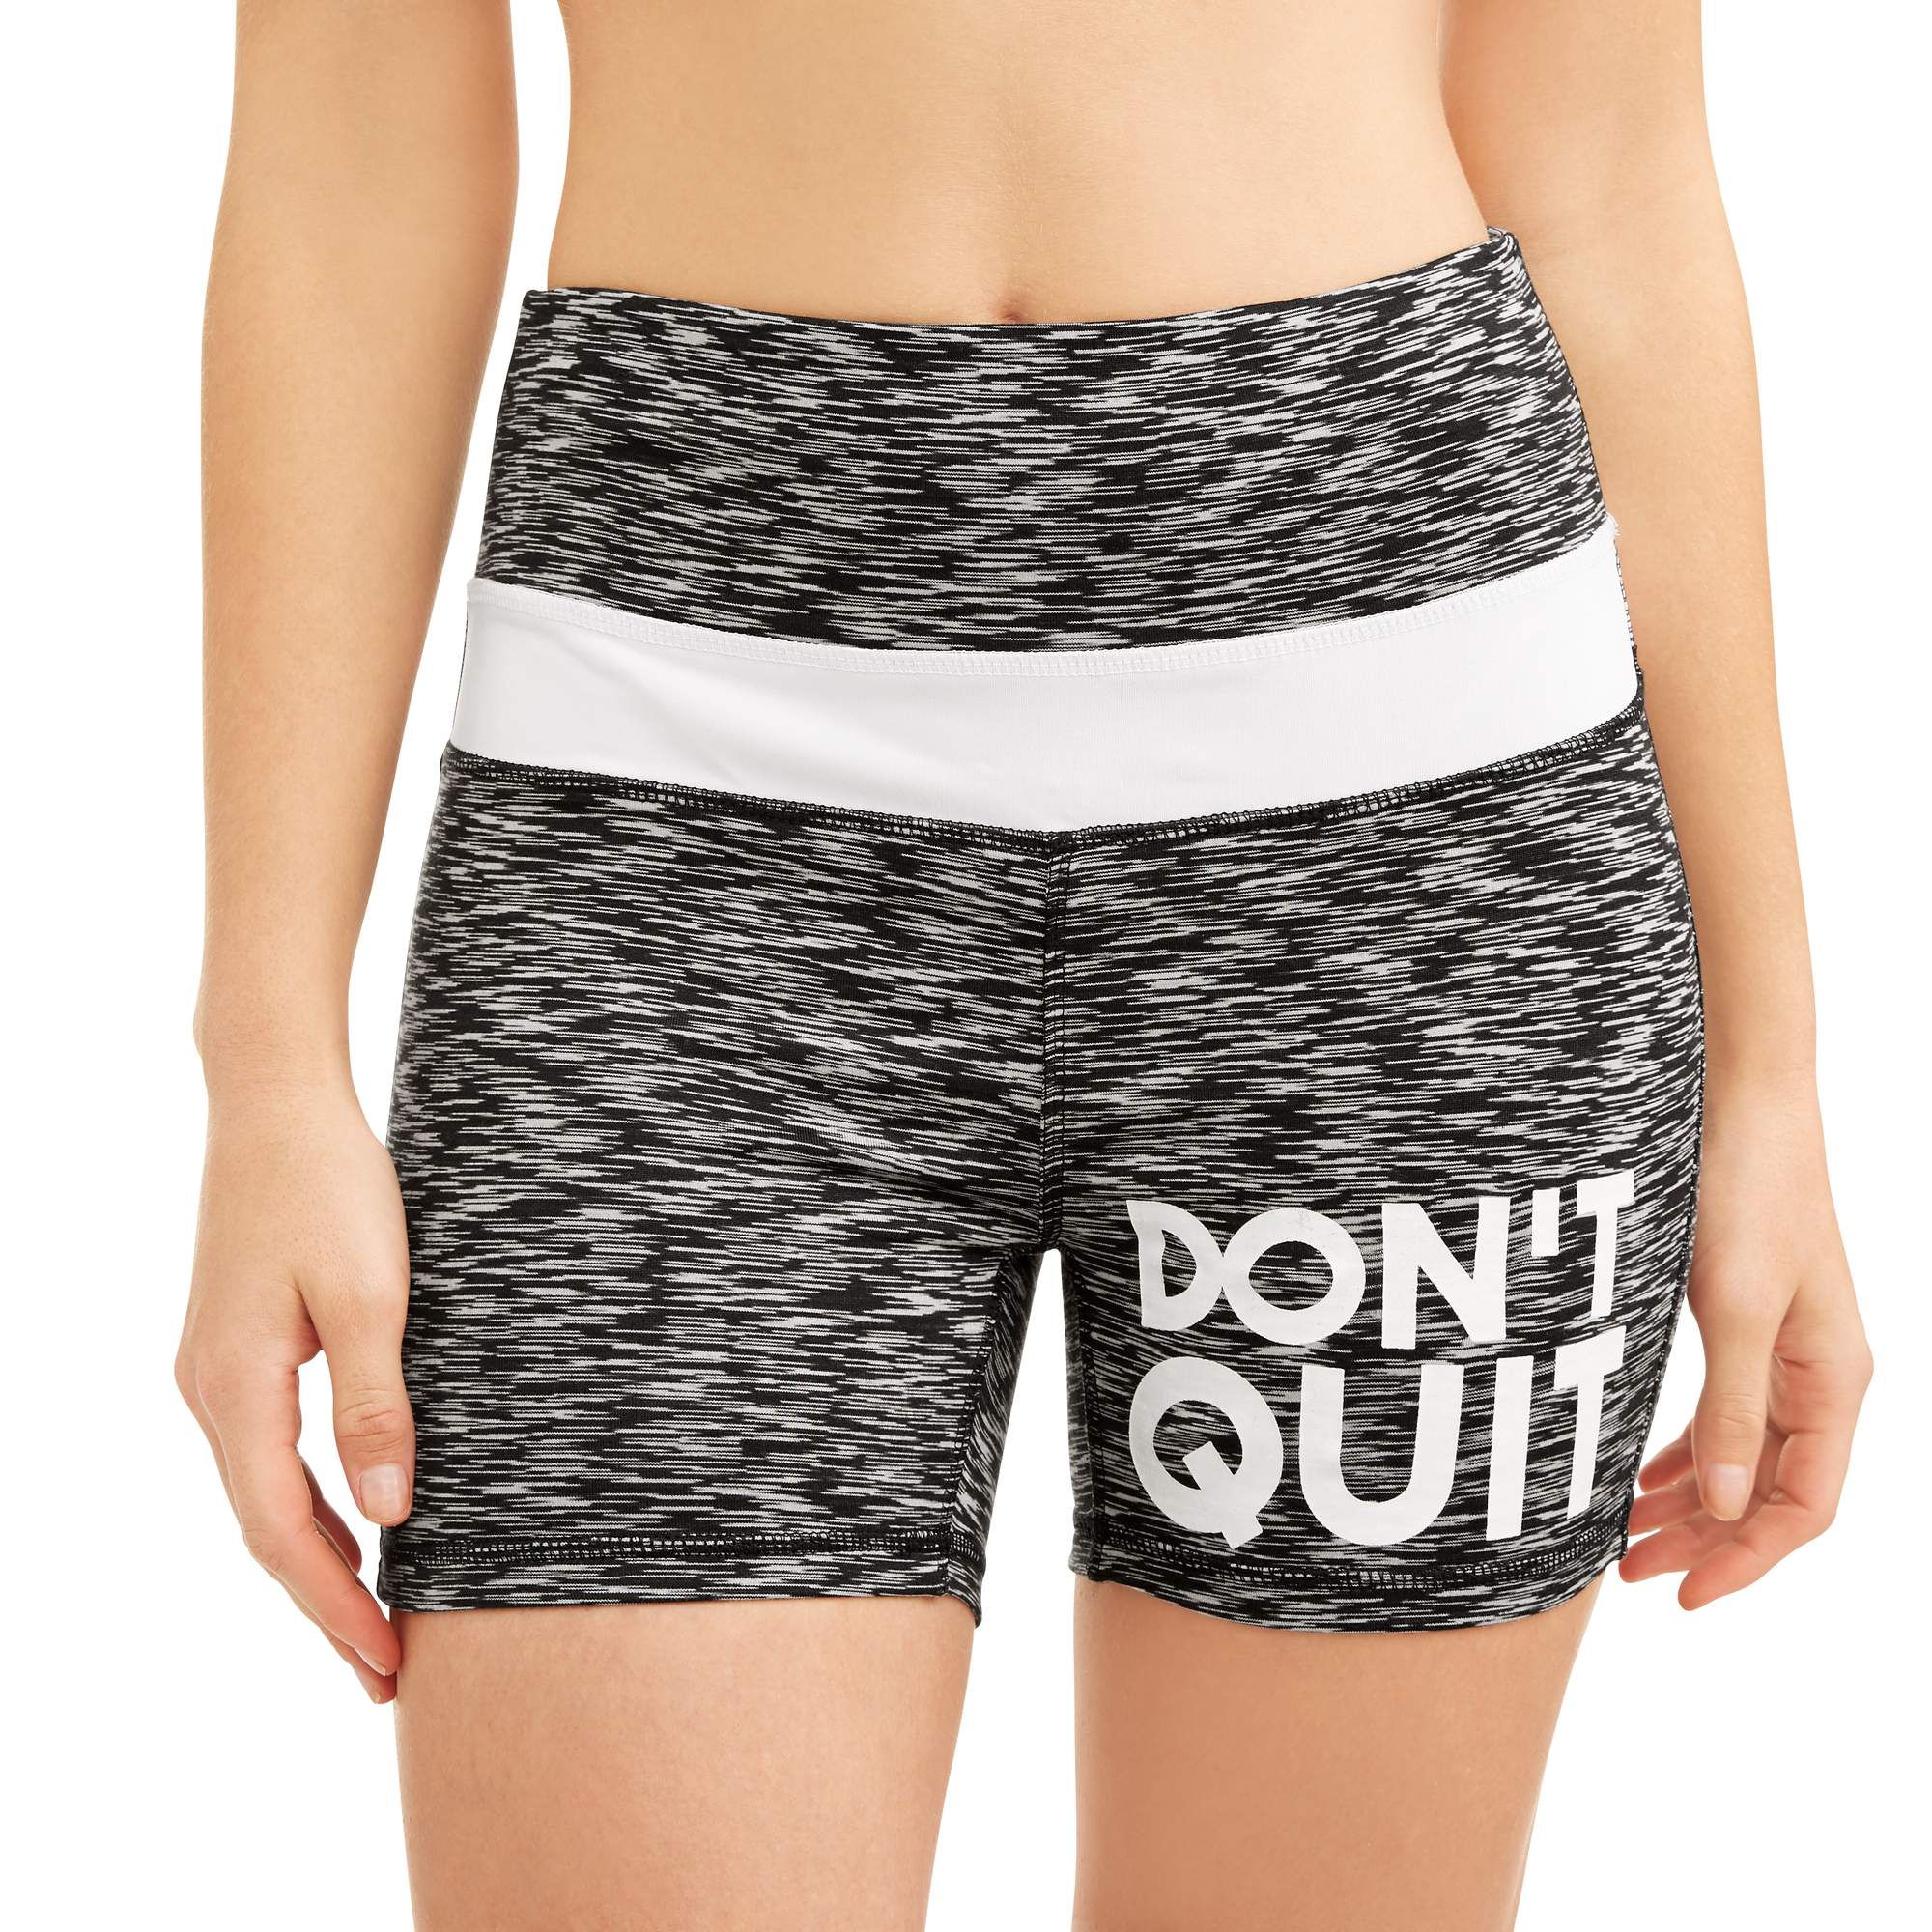 Women's Active Graphic Fitspiration 'Don't Quit' Performance Bike Shorts